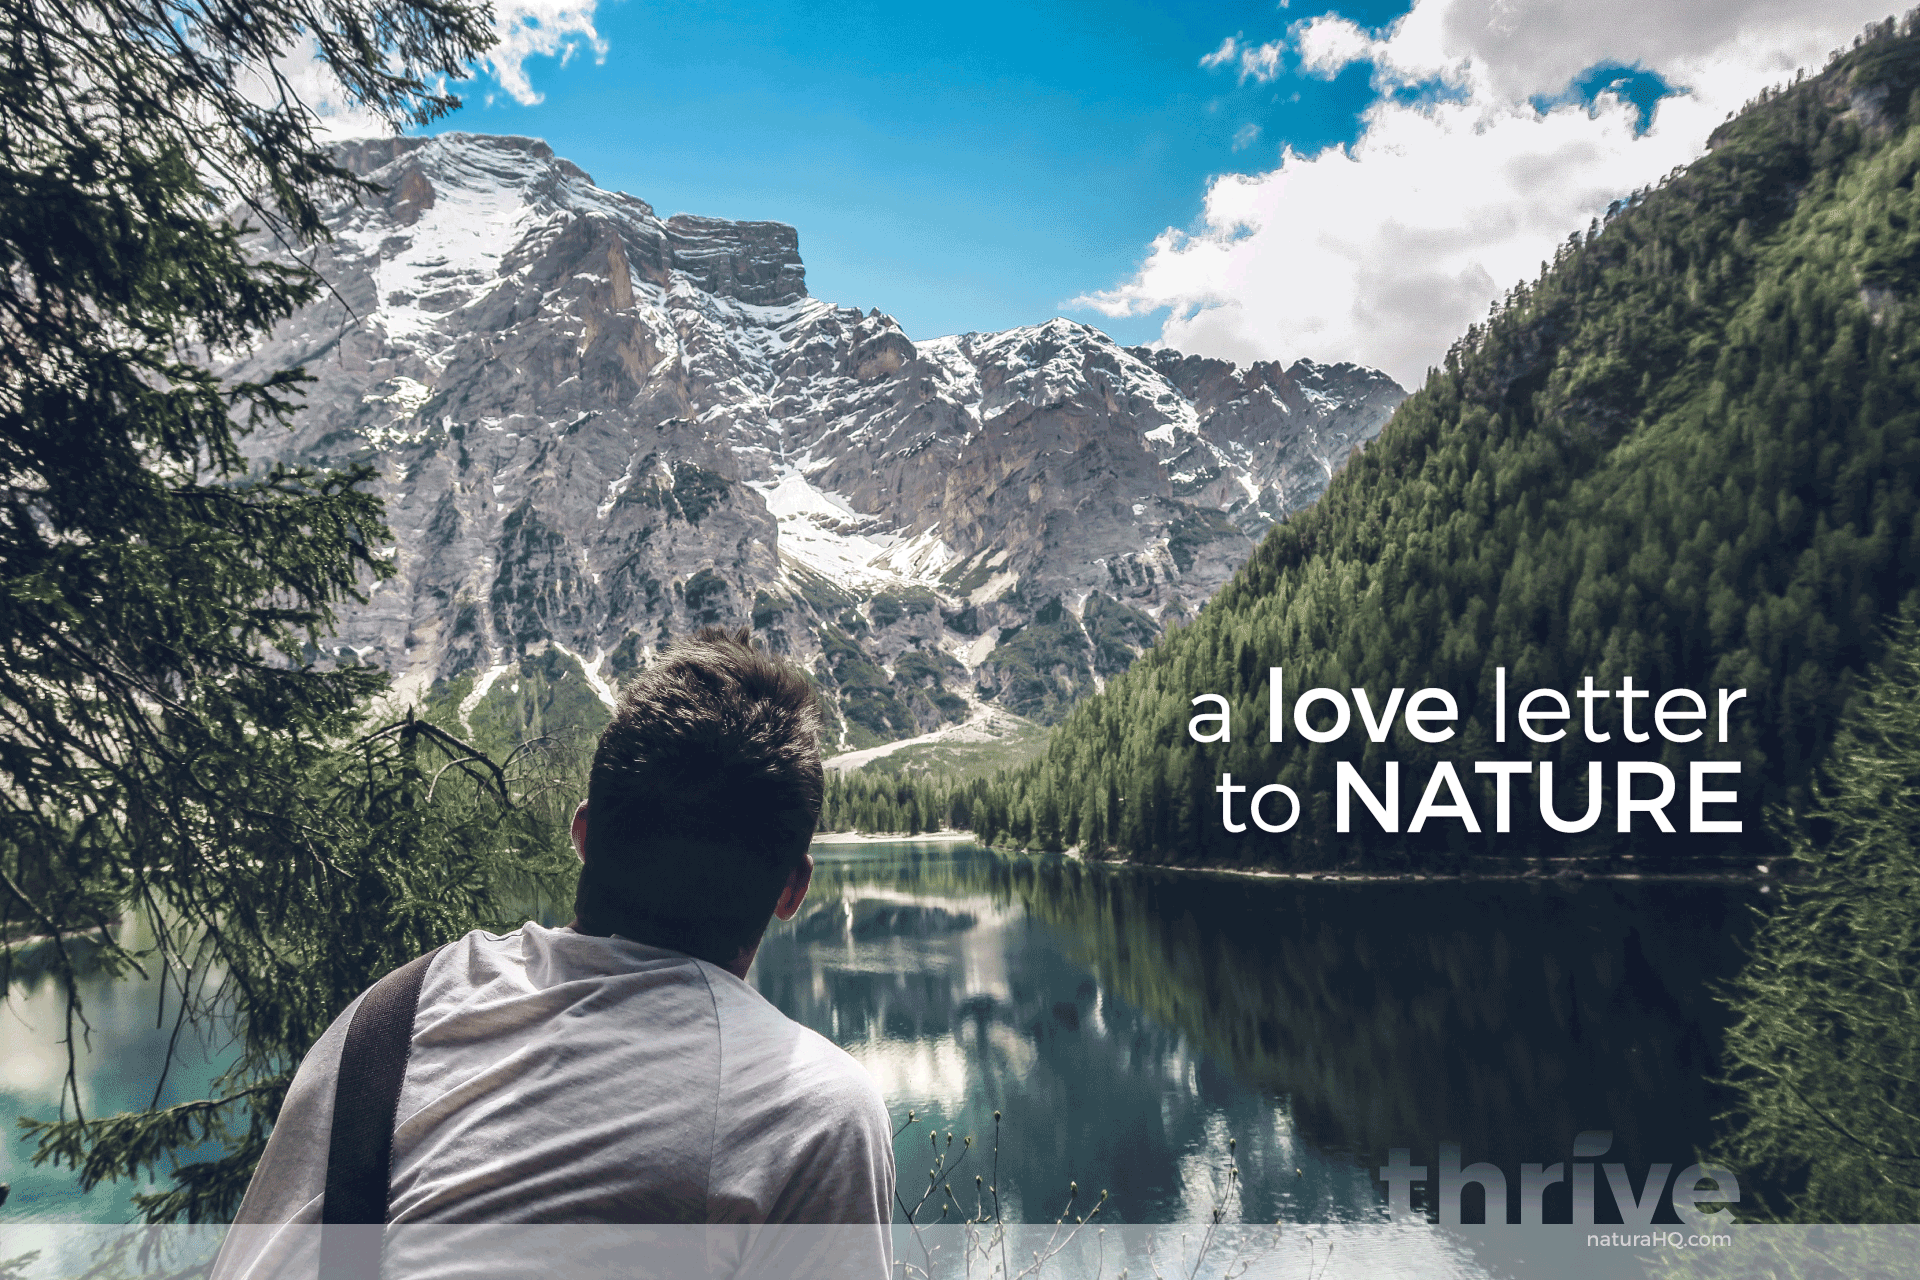 a Love Letter to nature